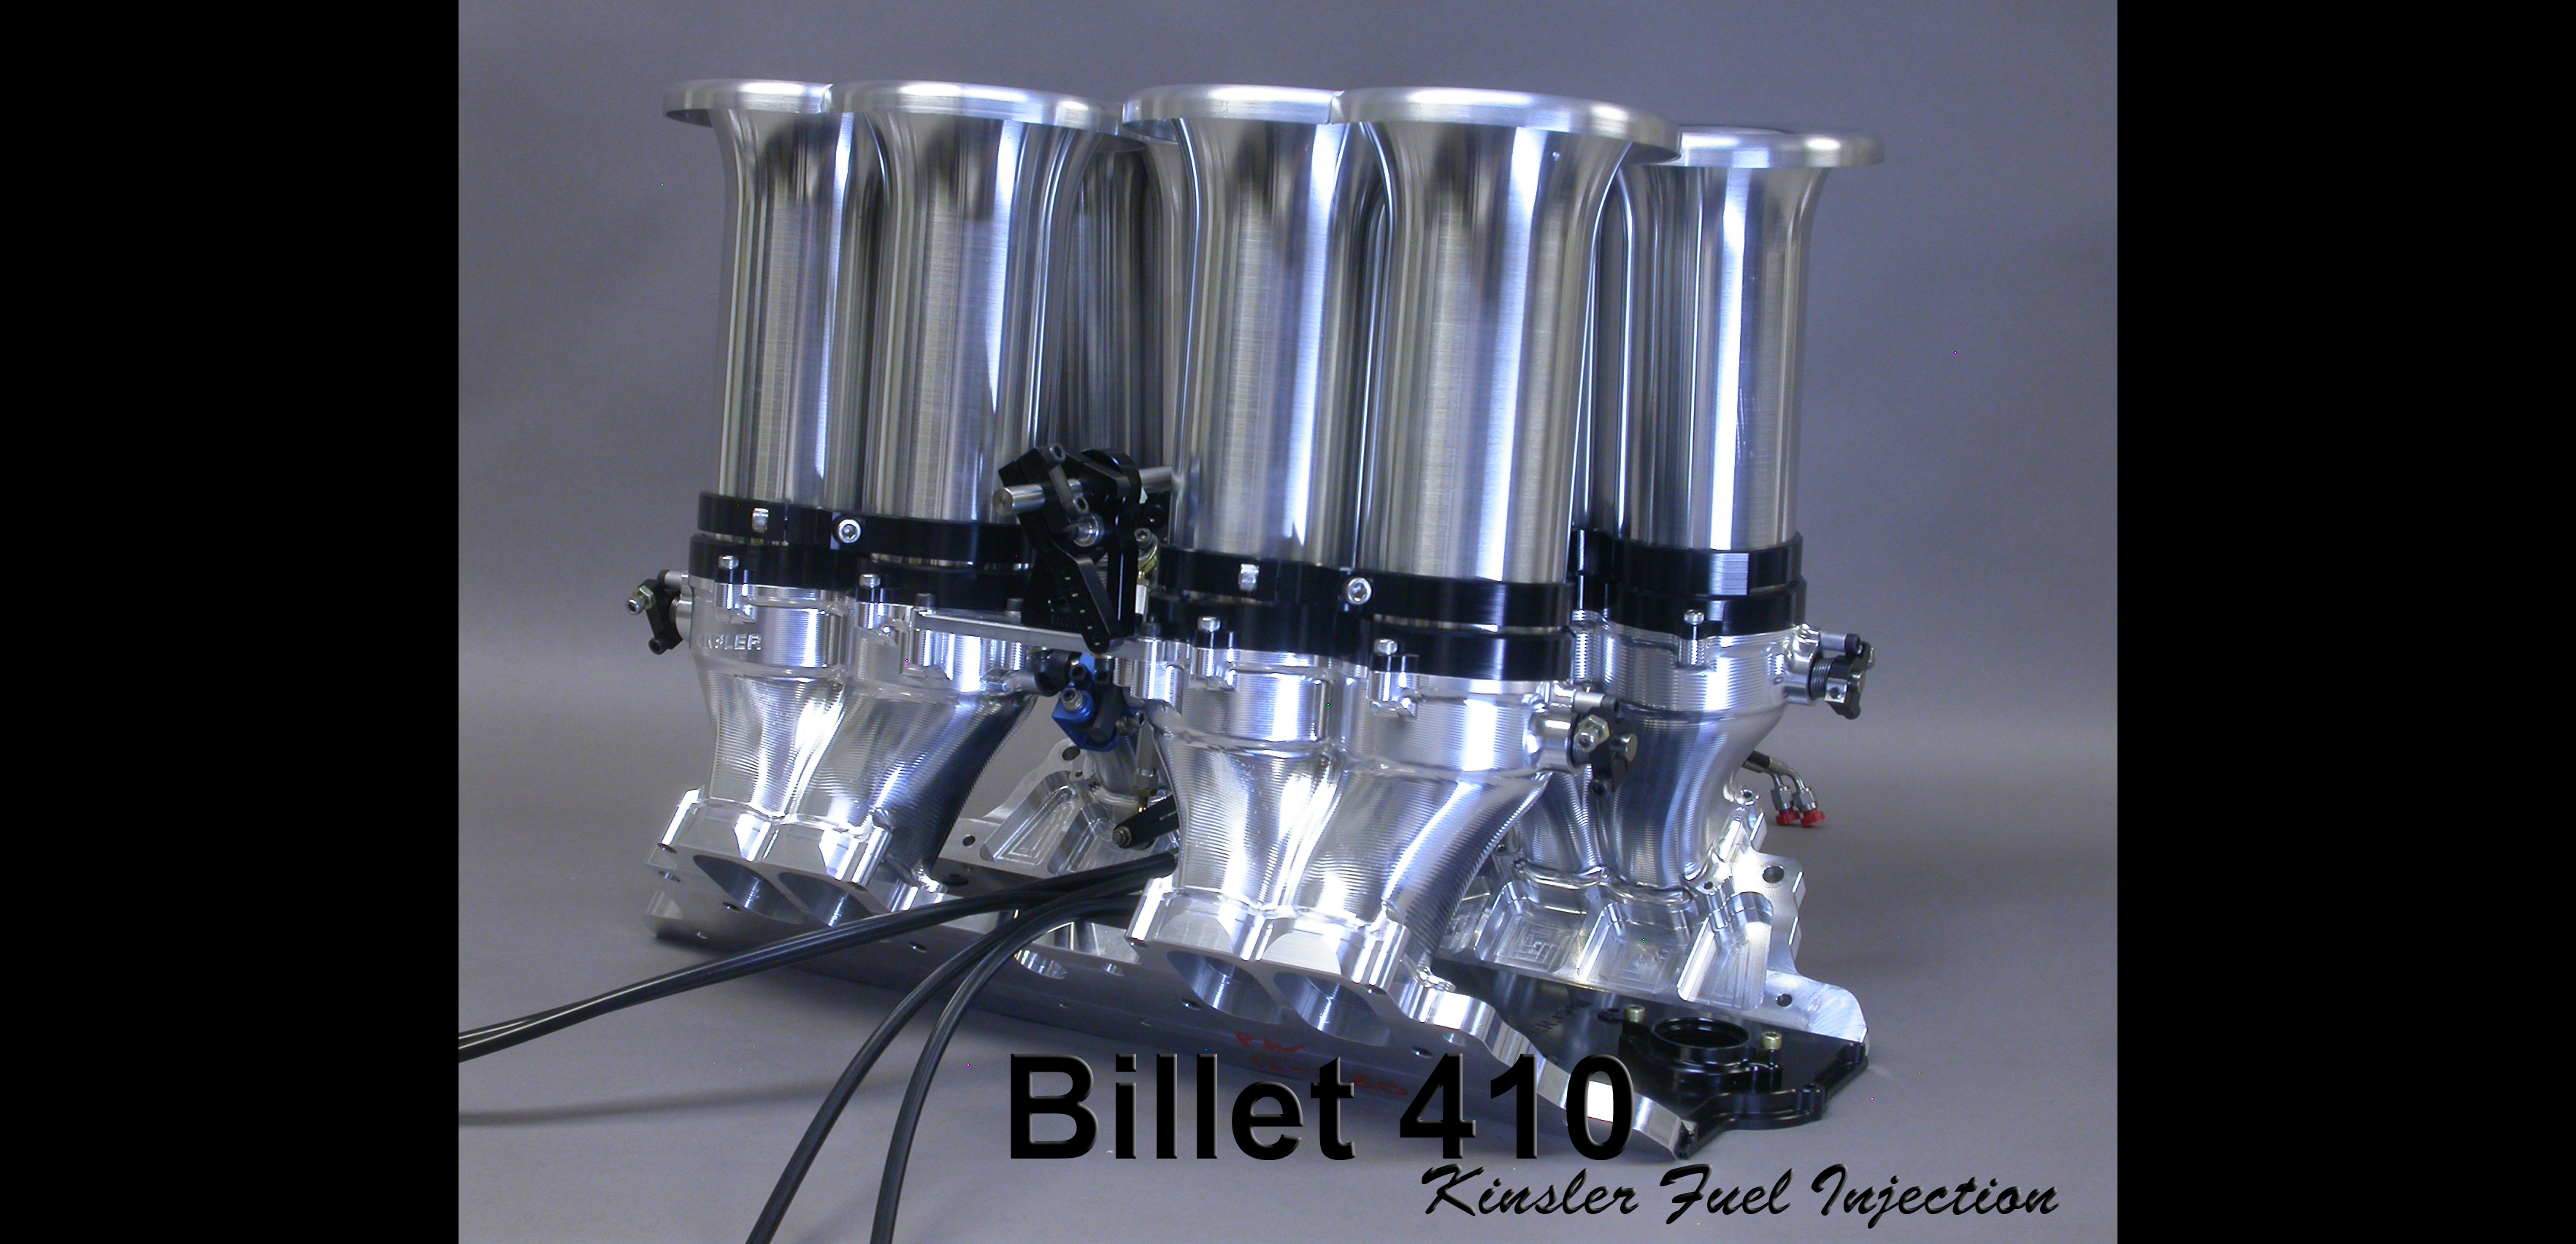 Kinsler Fuel Injection Manufacturing Sales And Service Pontiac Pressure Diagram Billet 410 Intake Manifold For Small Block Chev Ford Etc